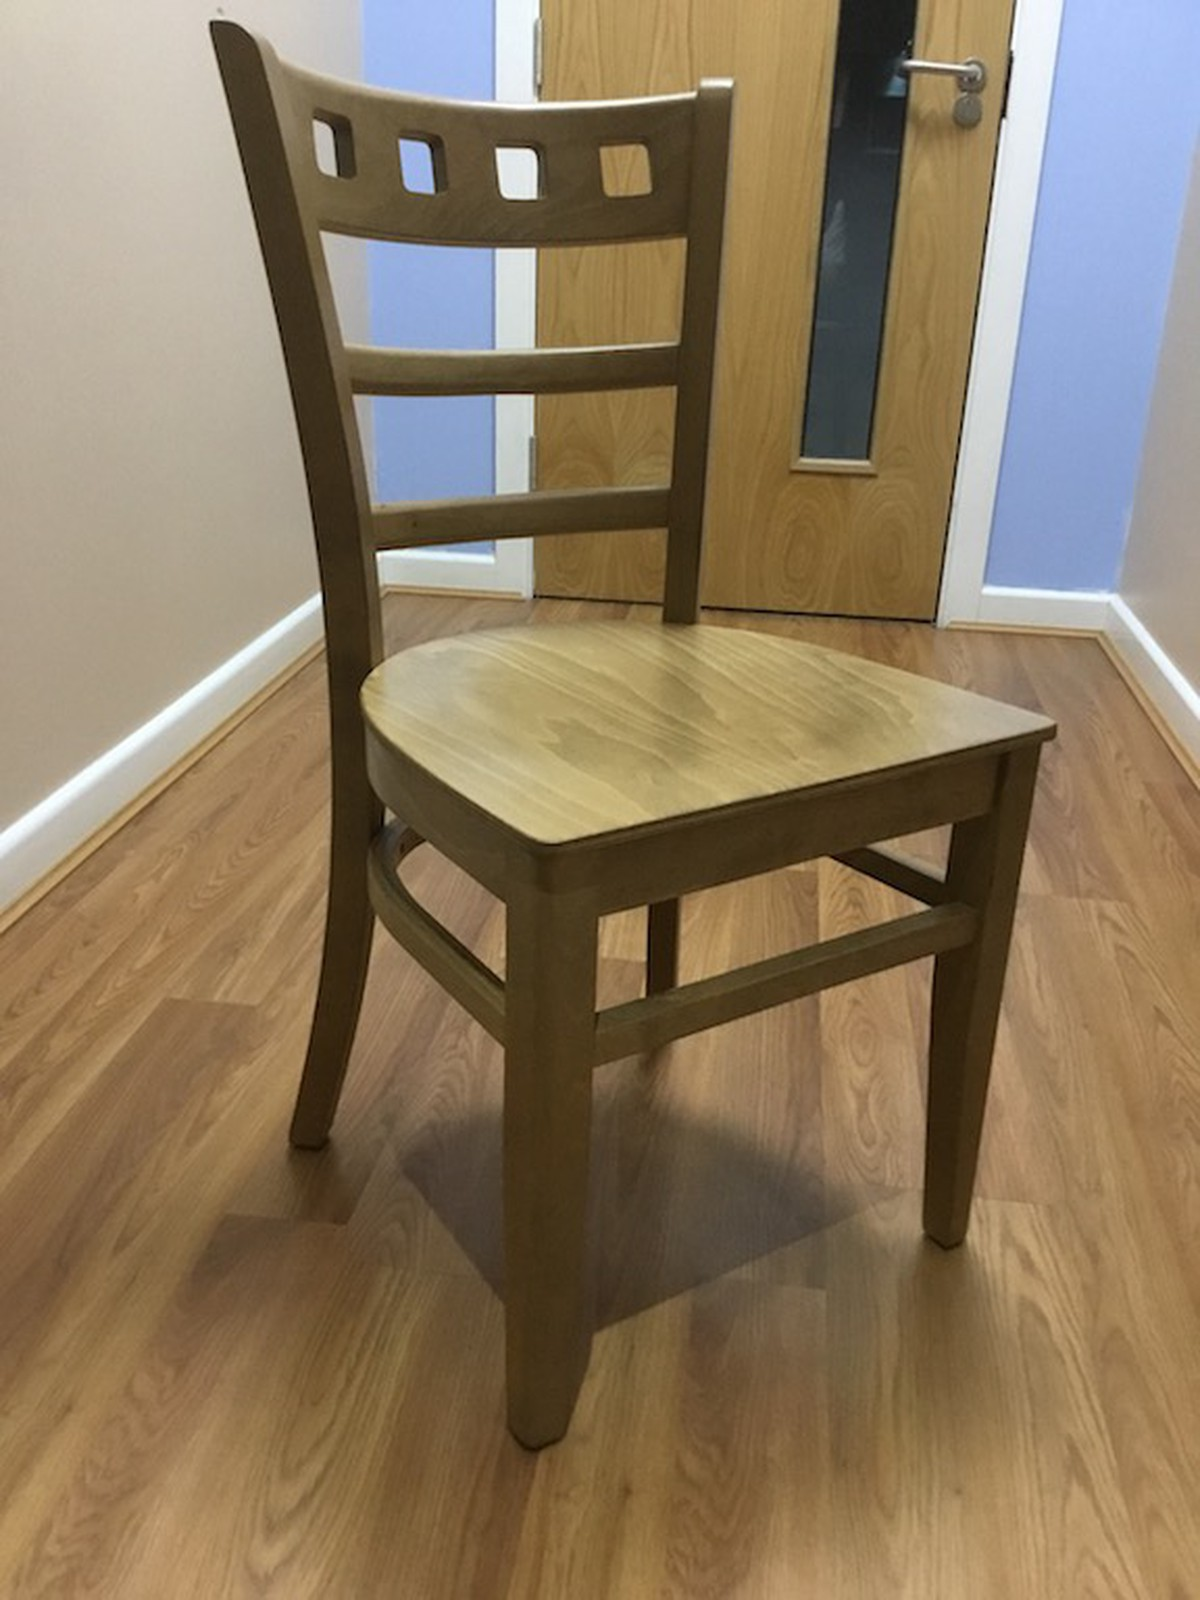 Secondhand chairs and tables cafe or bistro job